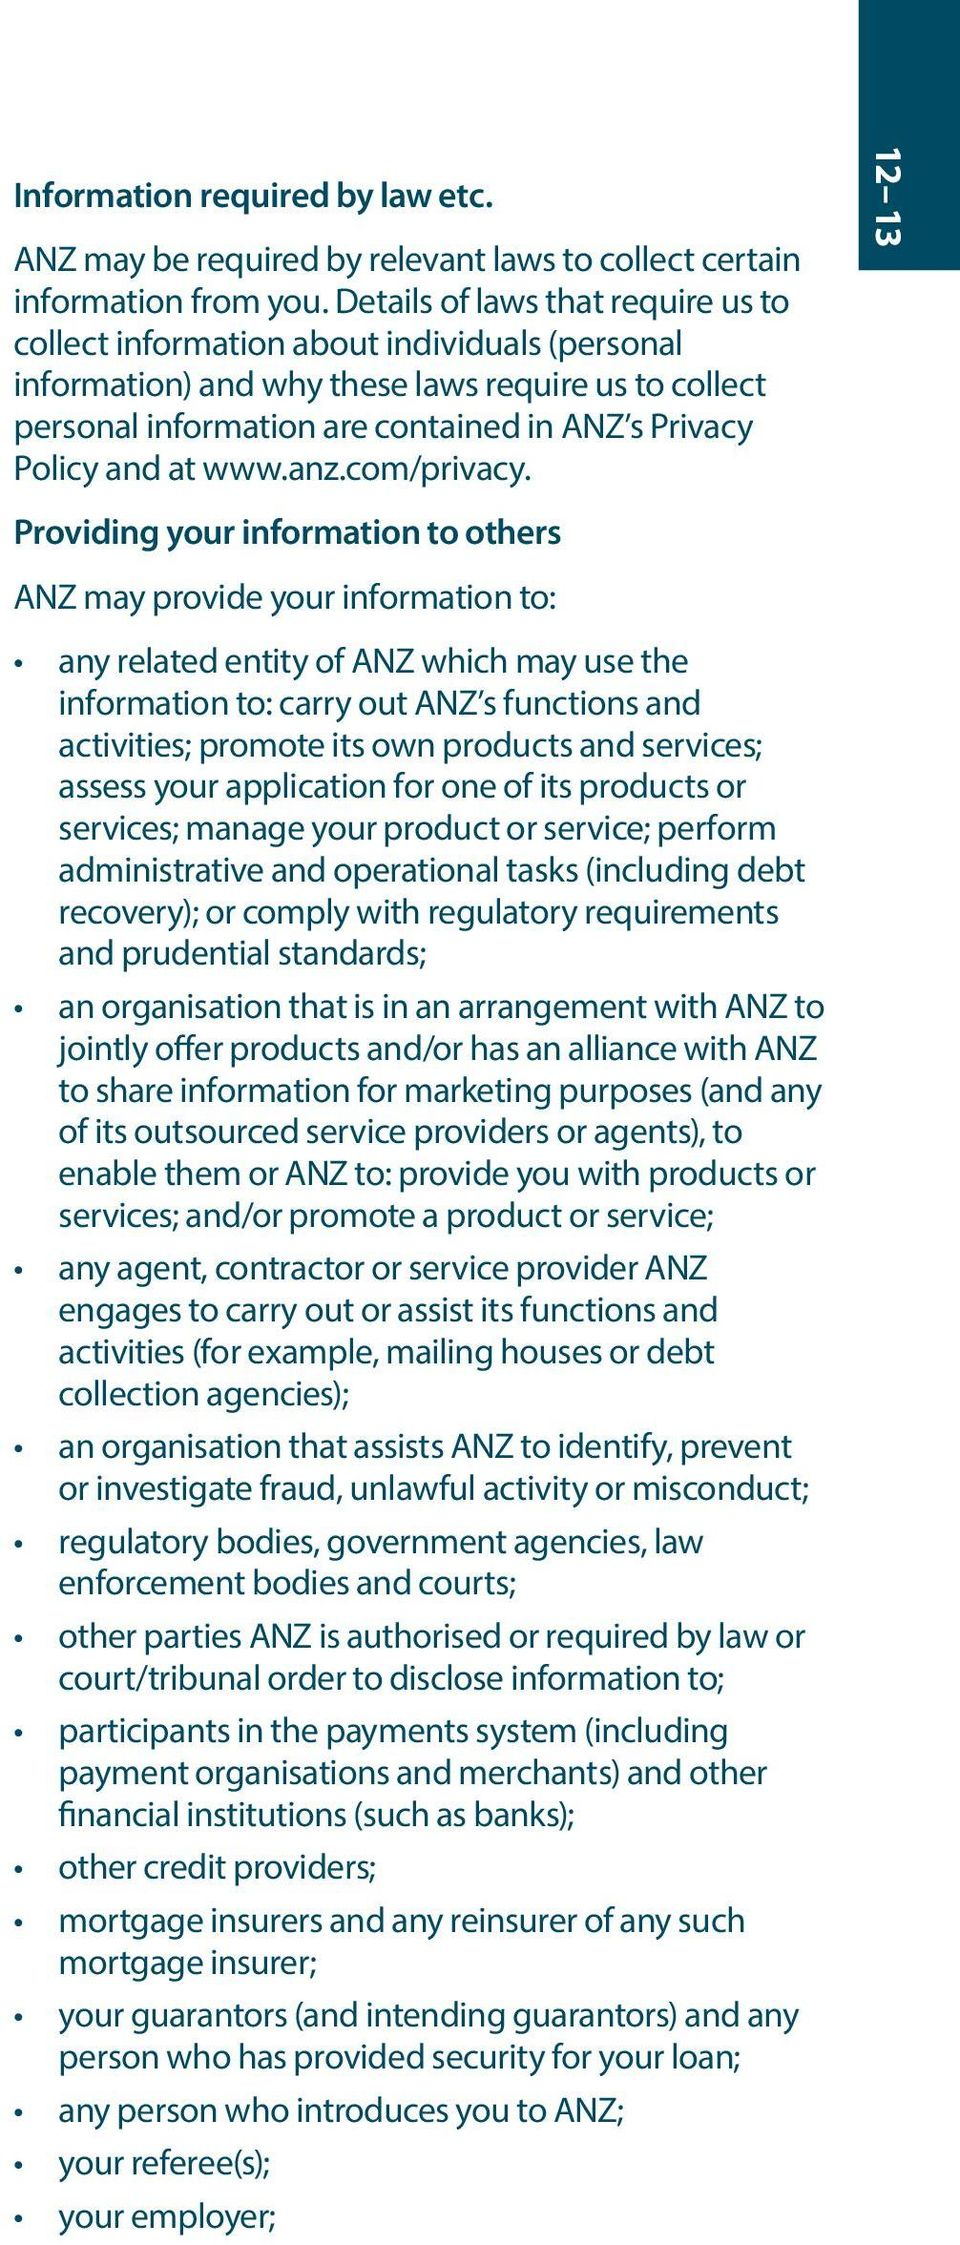 at www.anz.com/privacy.